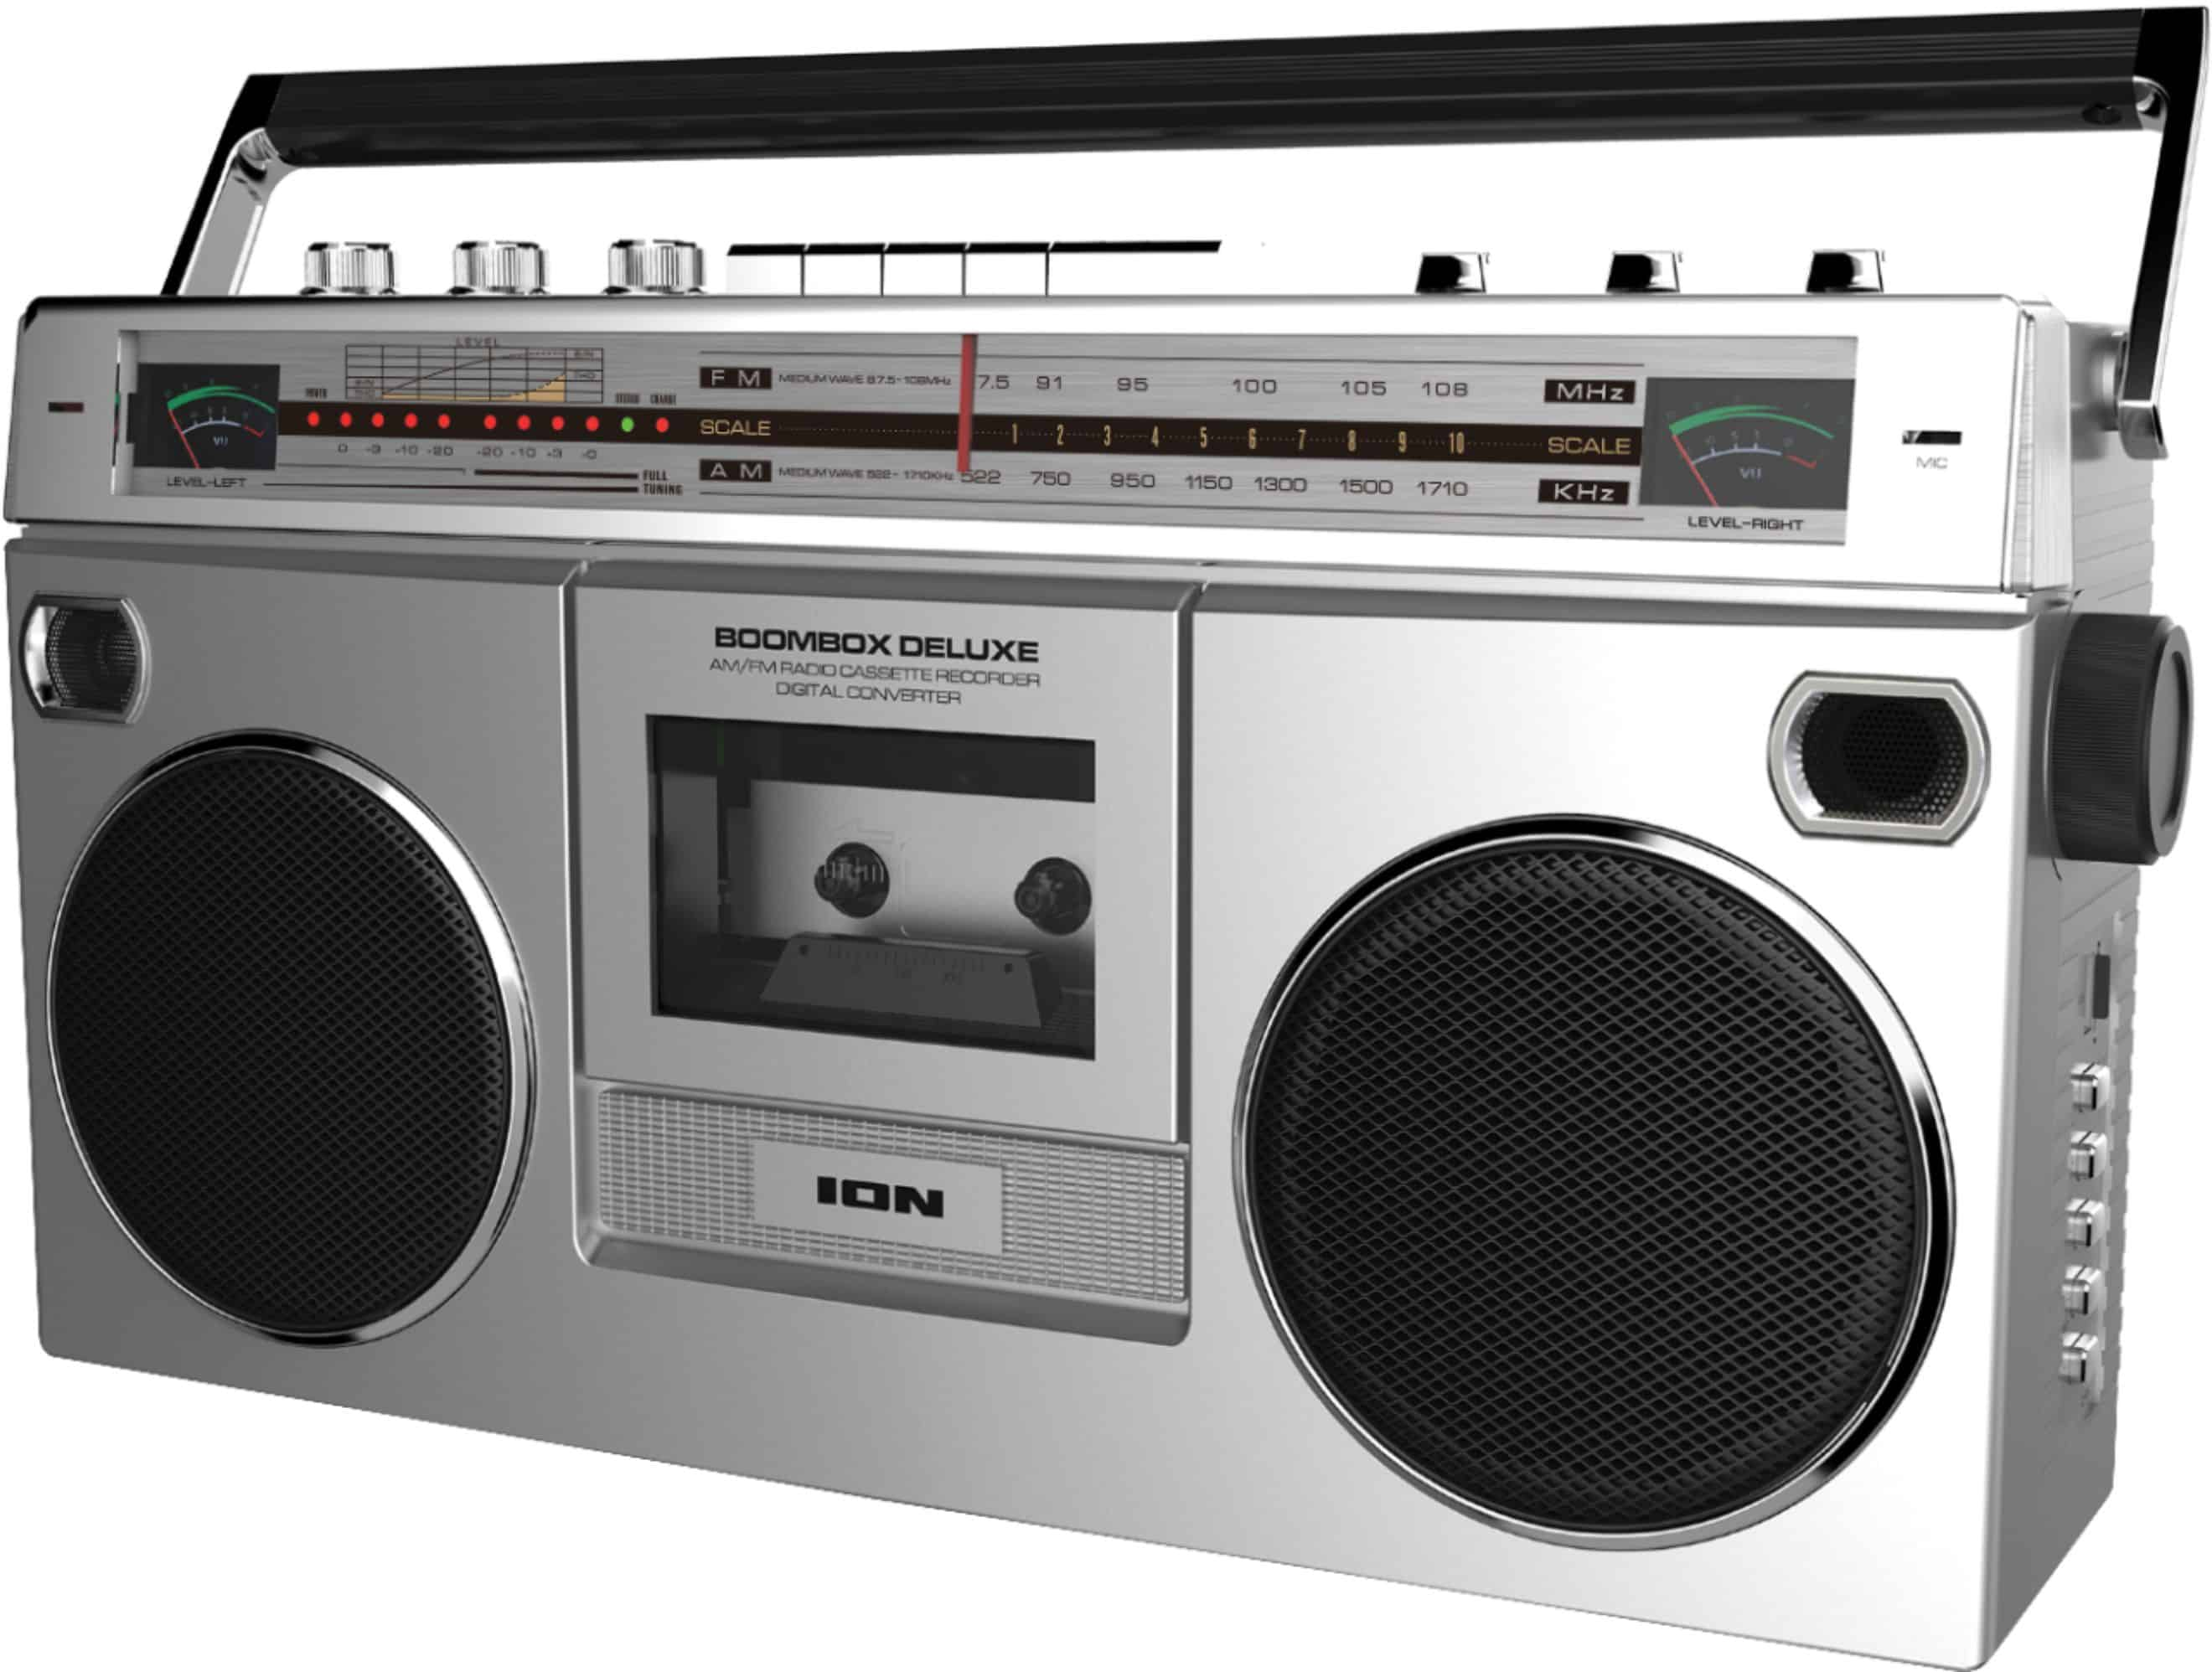 Kicking It Old School With The ION Boombox Deluxe Bluetooth Speaker #ad